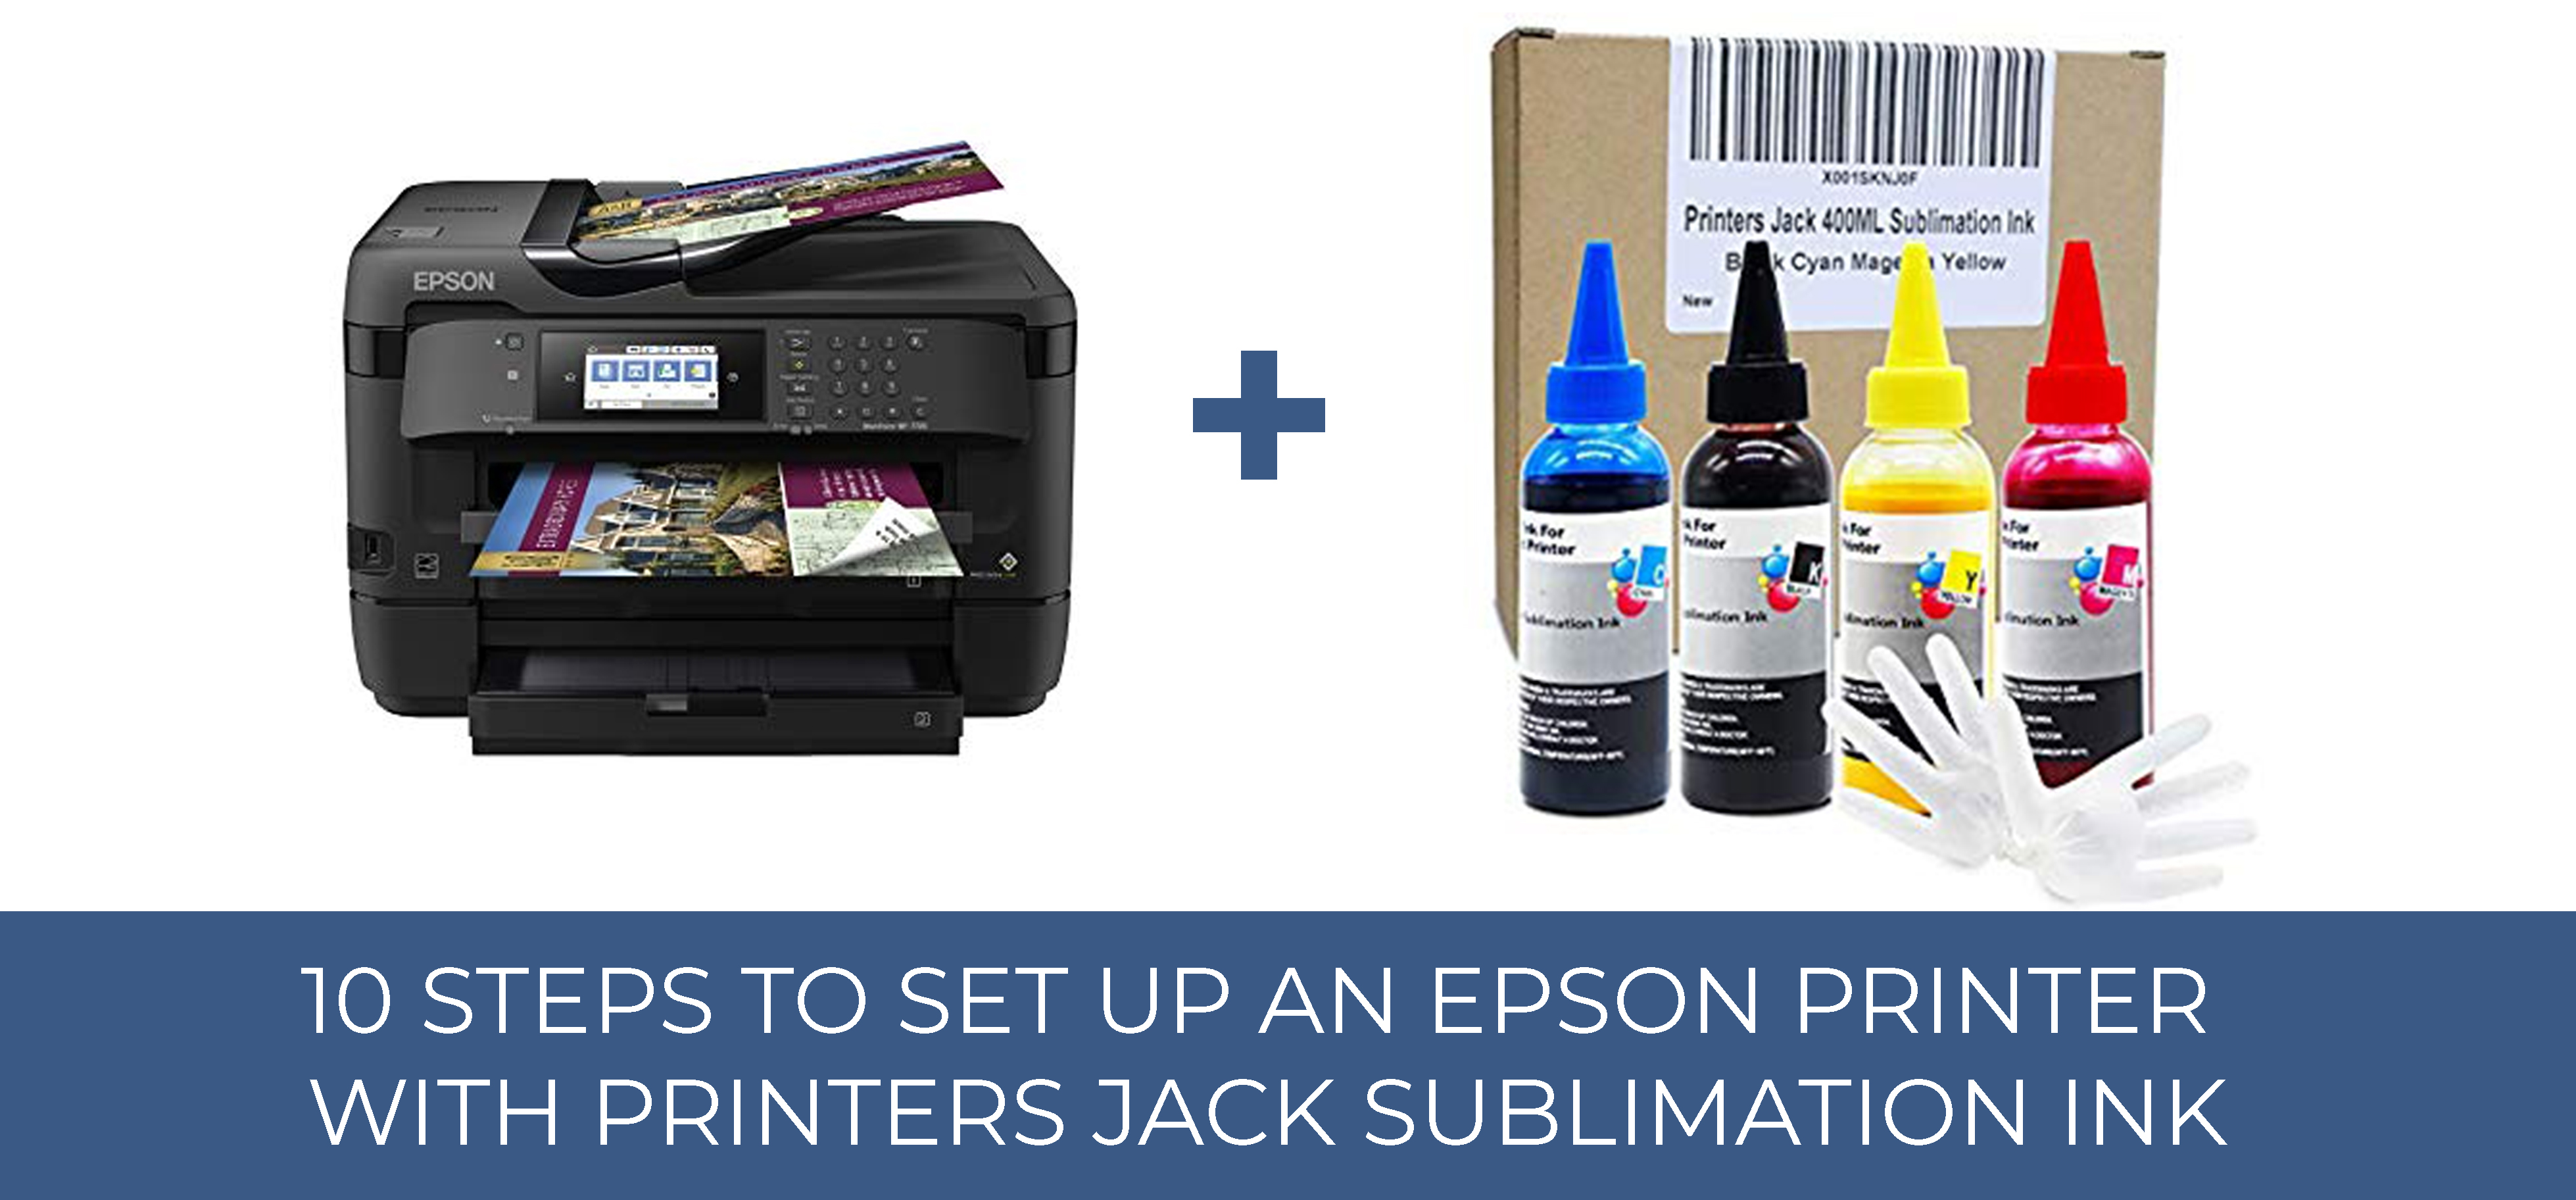 Sublimation Studies - Everything Sublimation Related